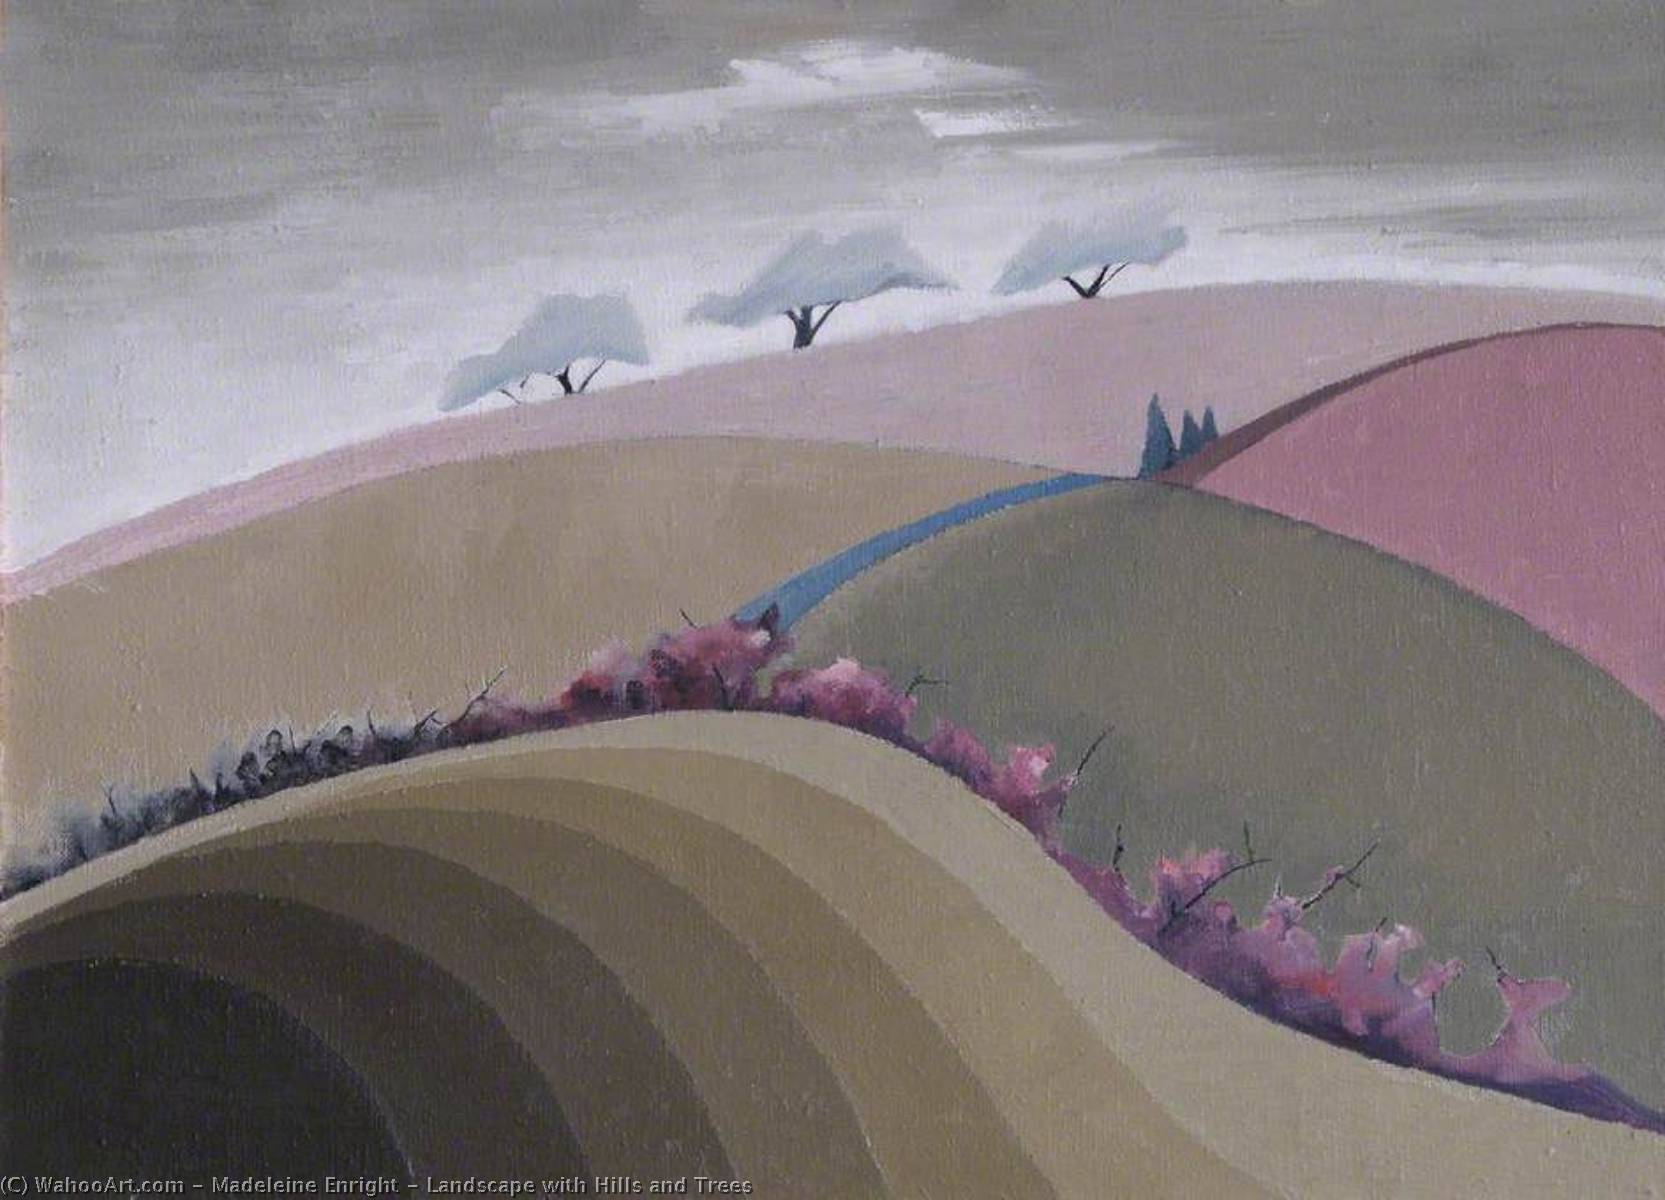 Landscape with Hills and Trees, Oil On Canvas by Madeleine Enright